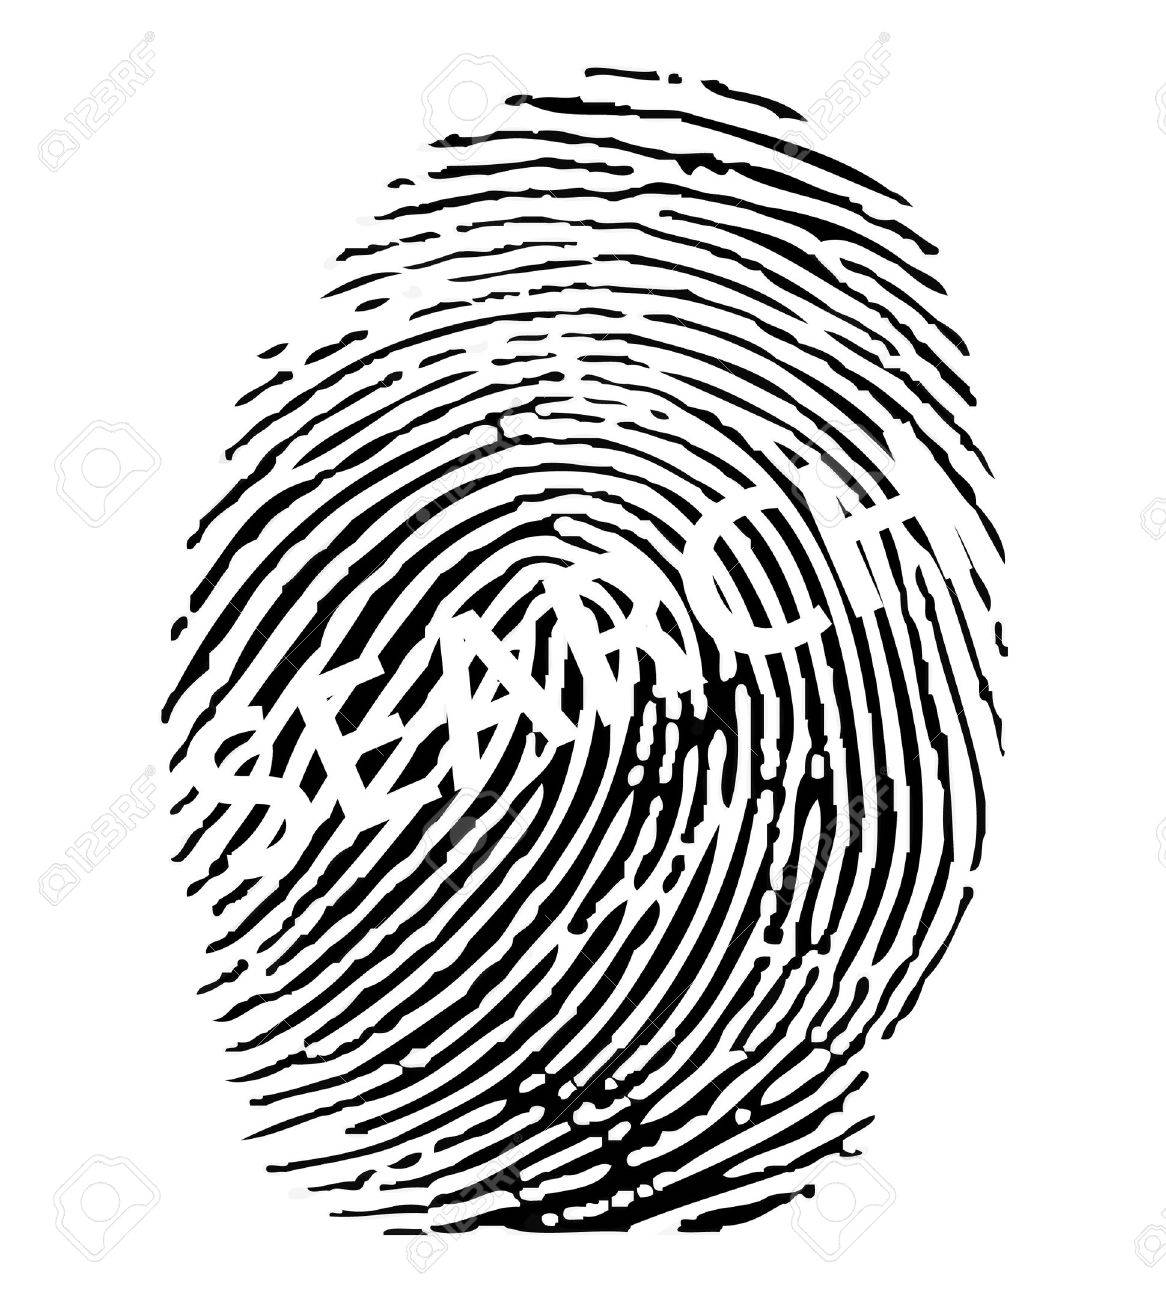 Fingerprint search. Stock Vector - 8273062